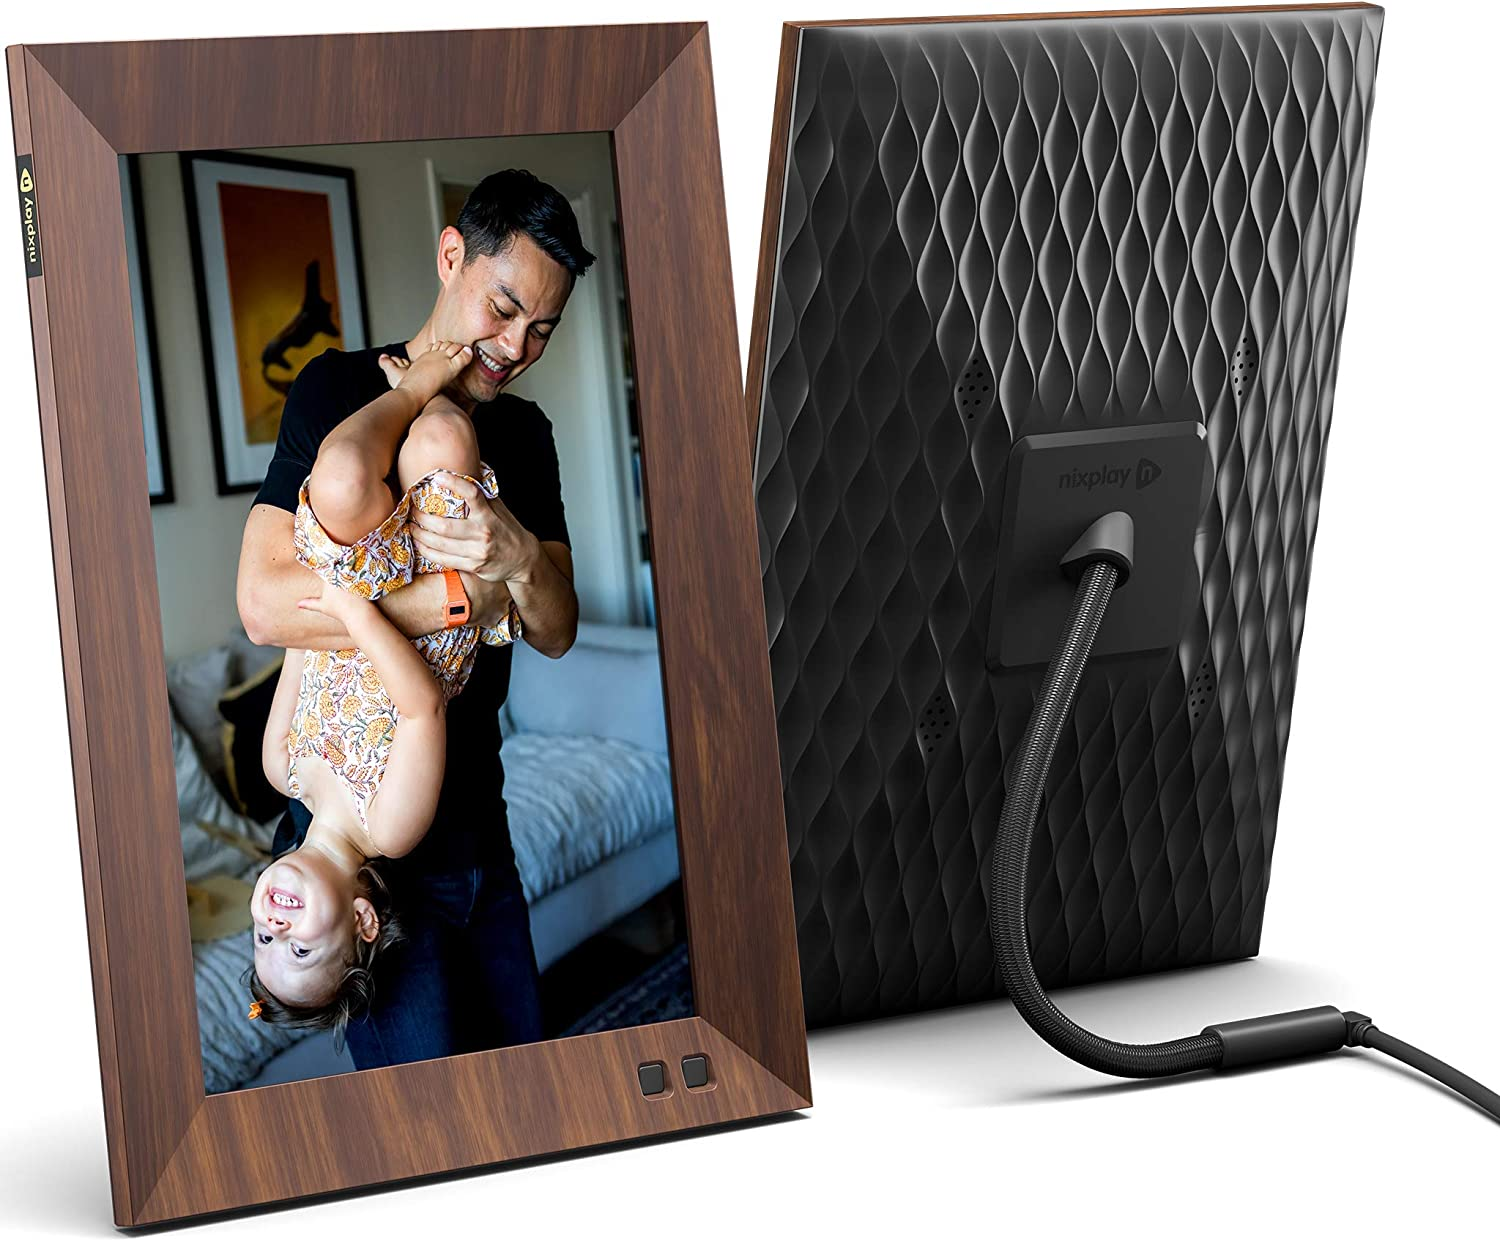 Nixplay 10.1Inch Wood Effect Smart Digital Picture Frame$142 Coupon